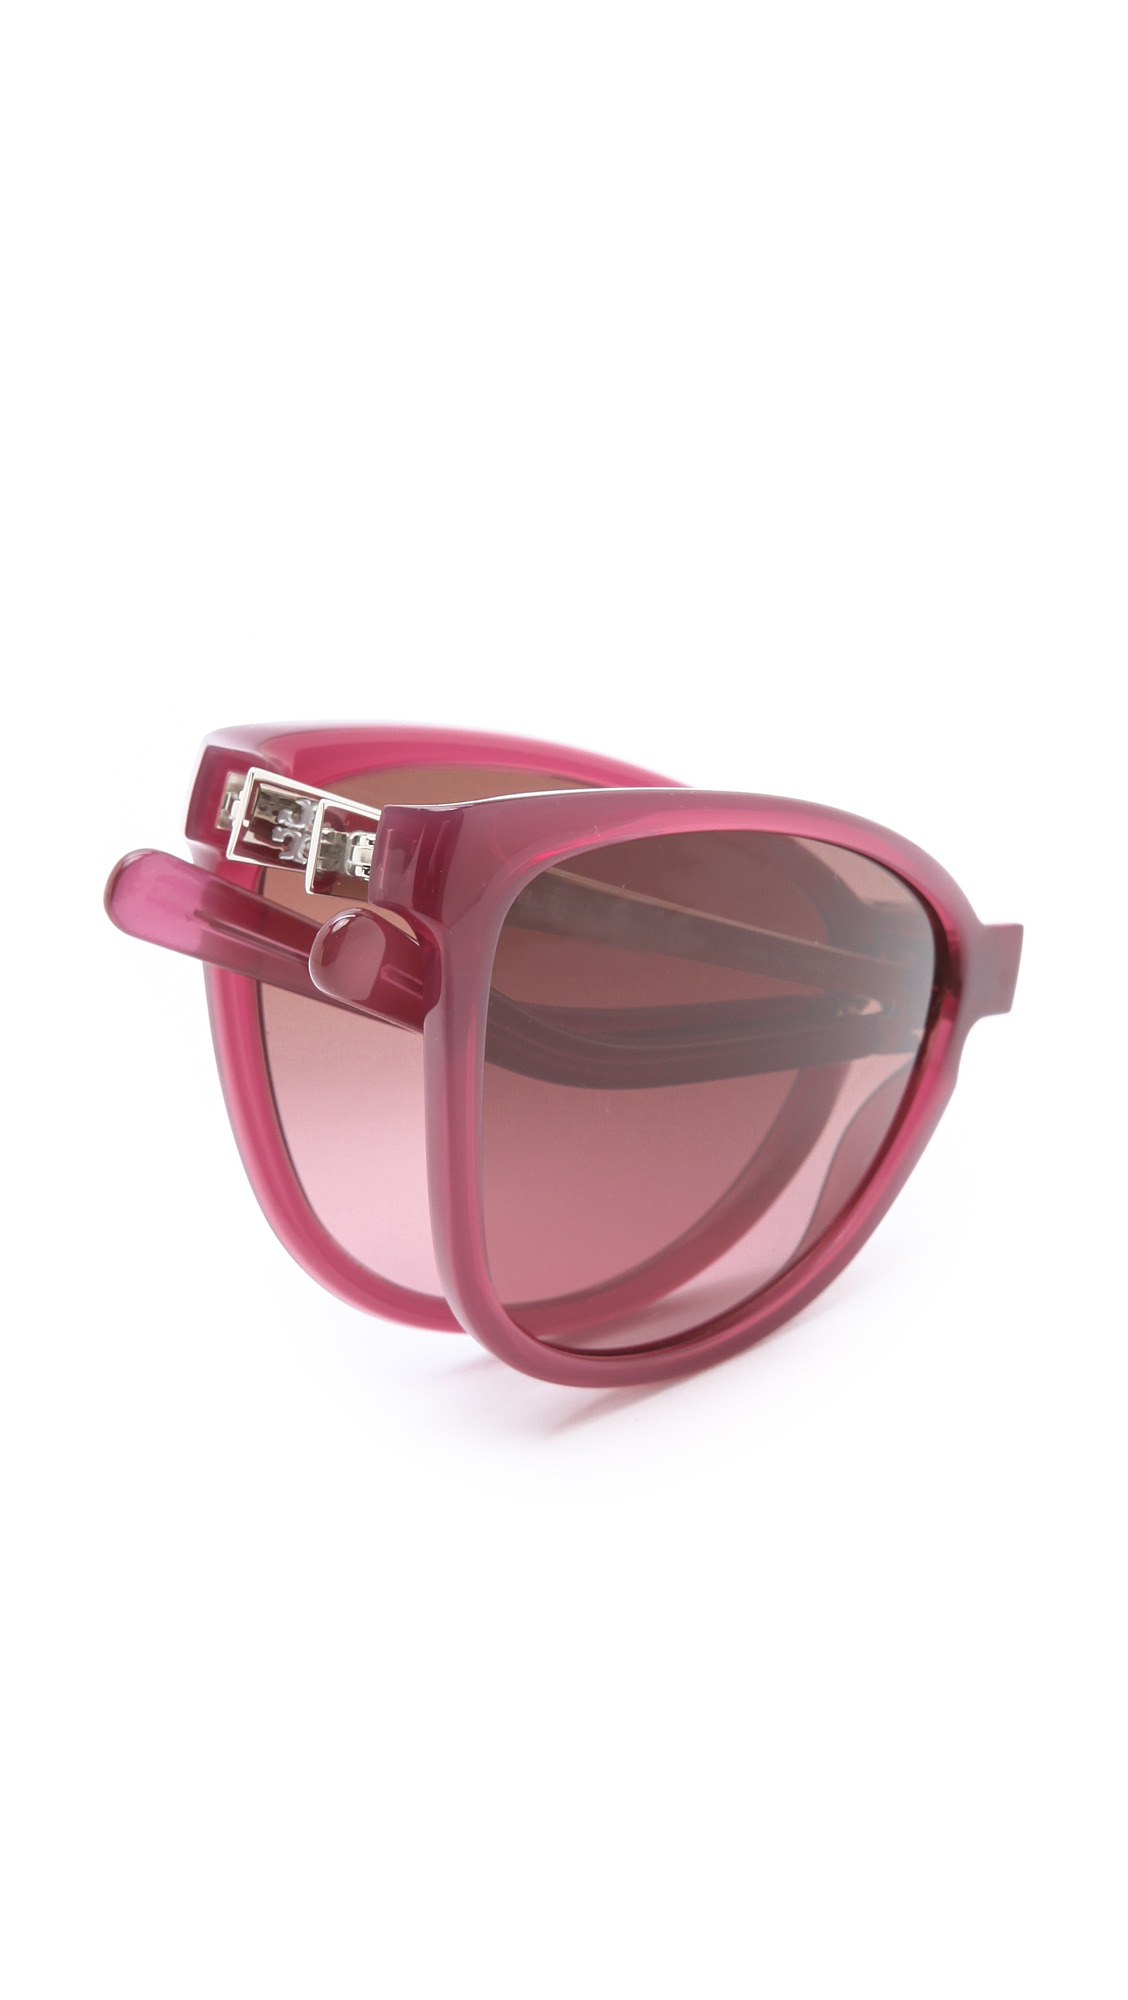 Foldable Sunglasses  tory burch modern foldable sunglasses in purple lyst